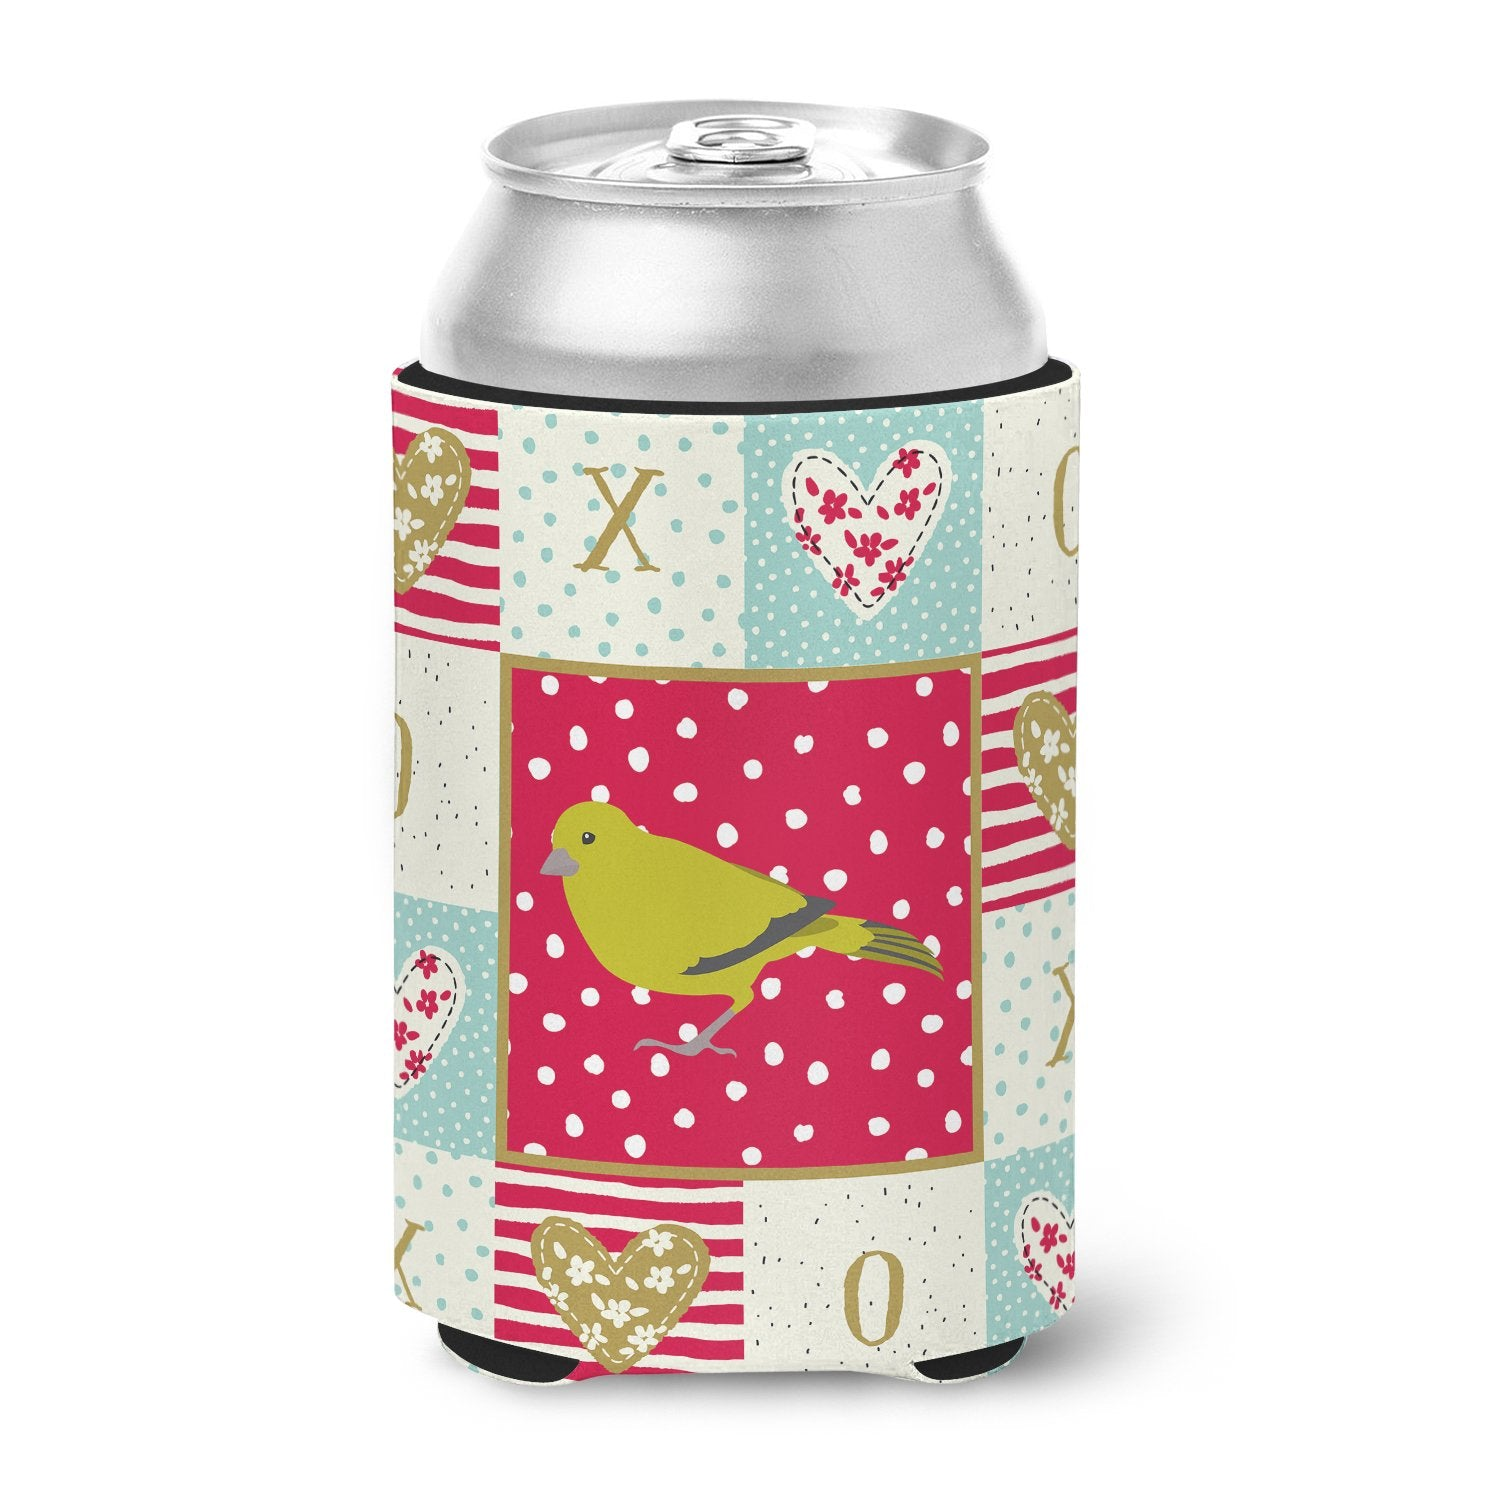 Buy this London Canary Love Can or Bottle Hugger CK5505CC